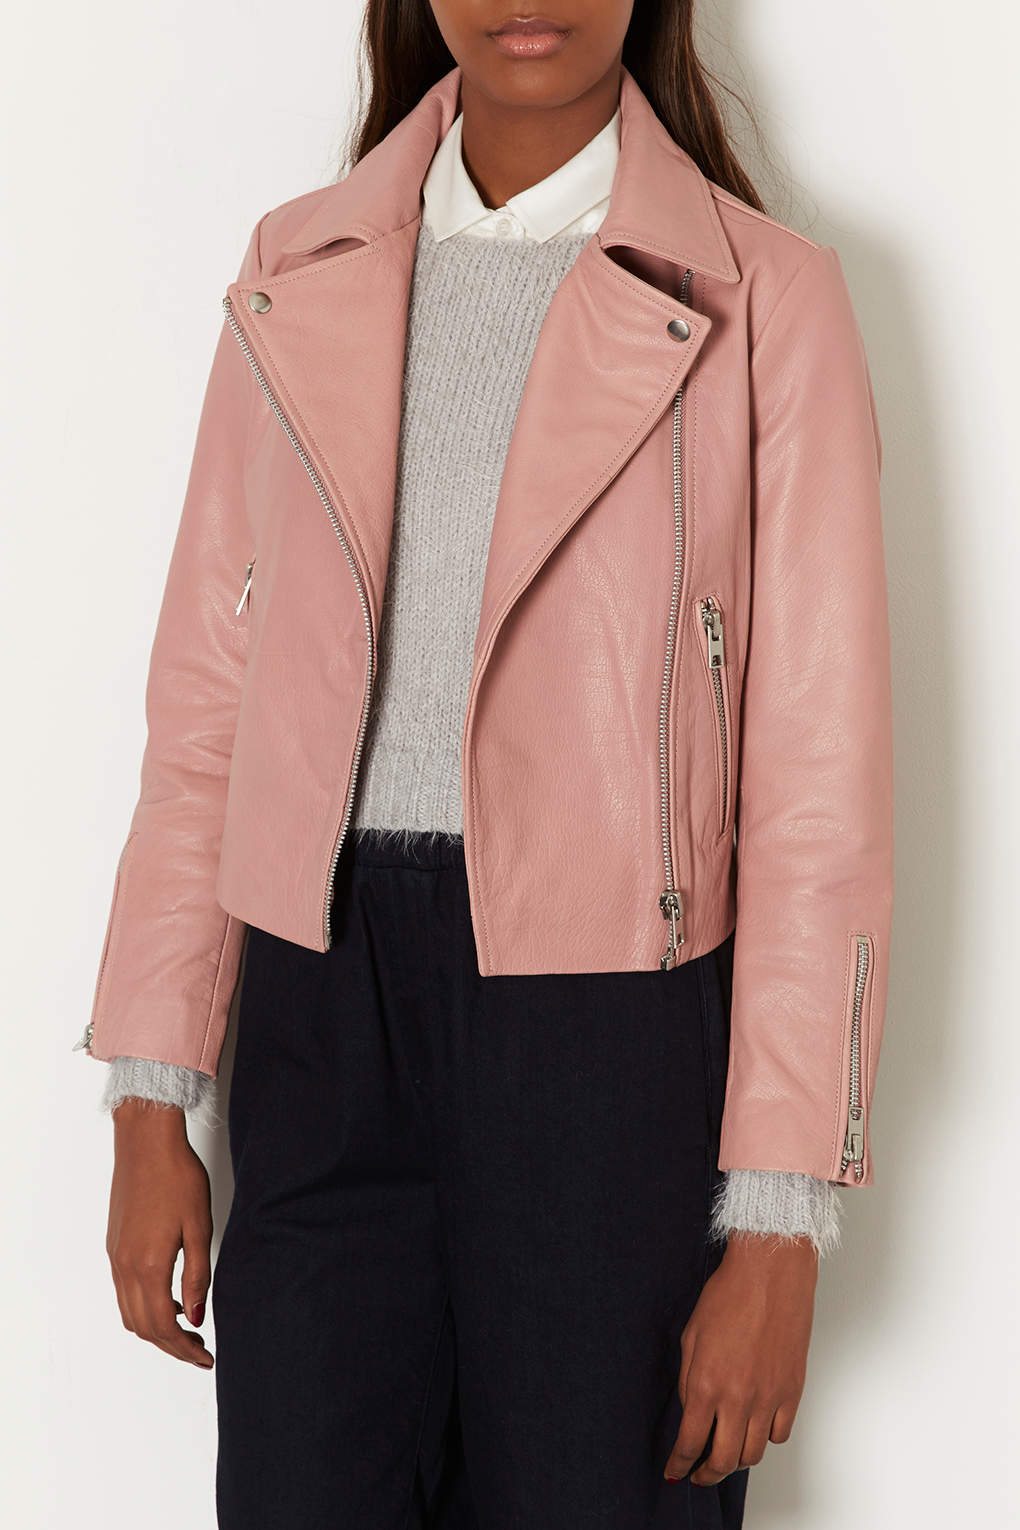 Topshop Boxy Leather Biker Jacket in Pink | Lyst